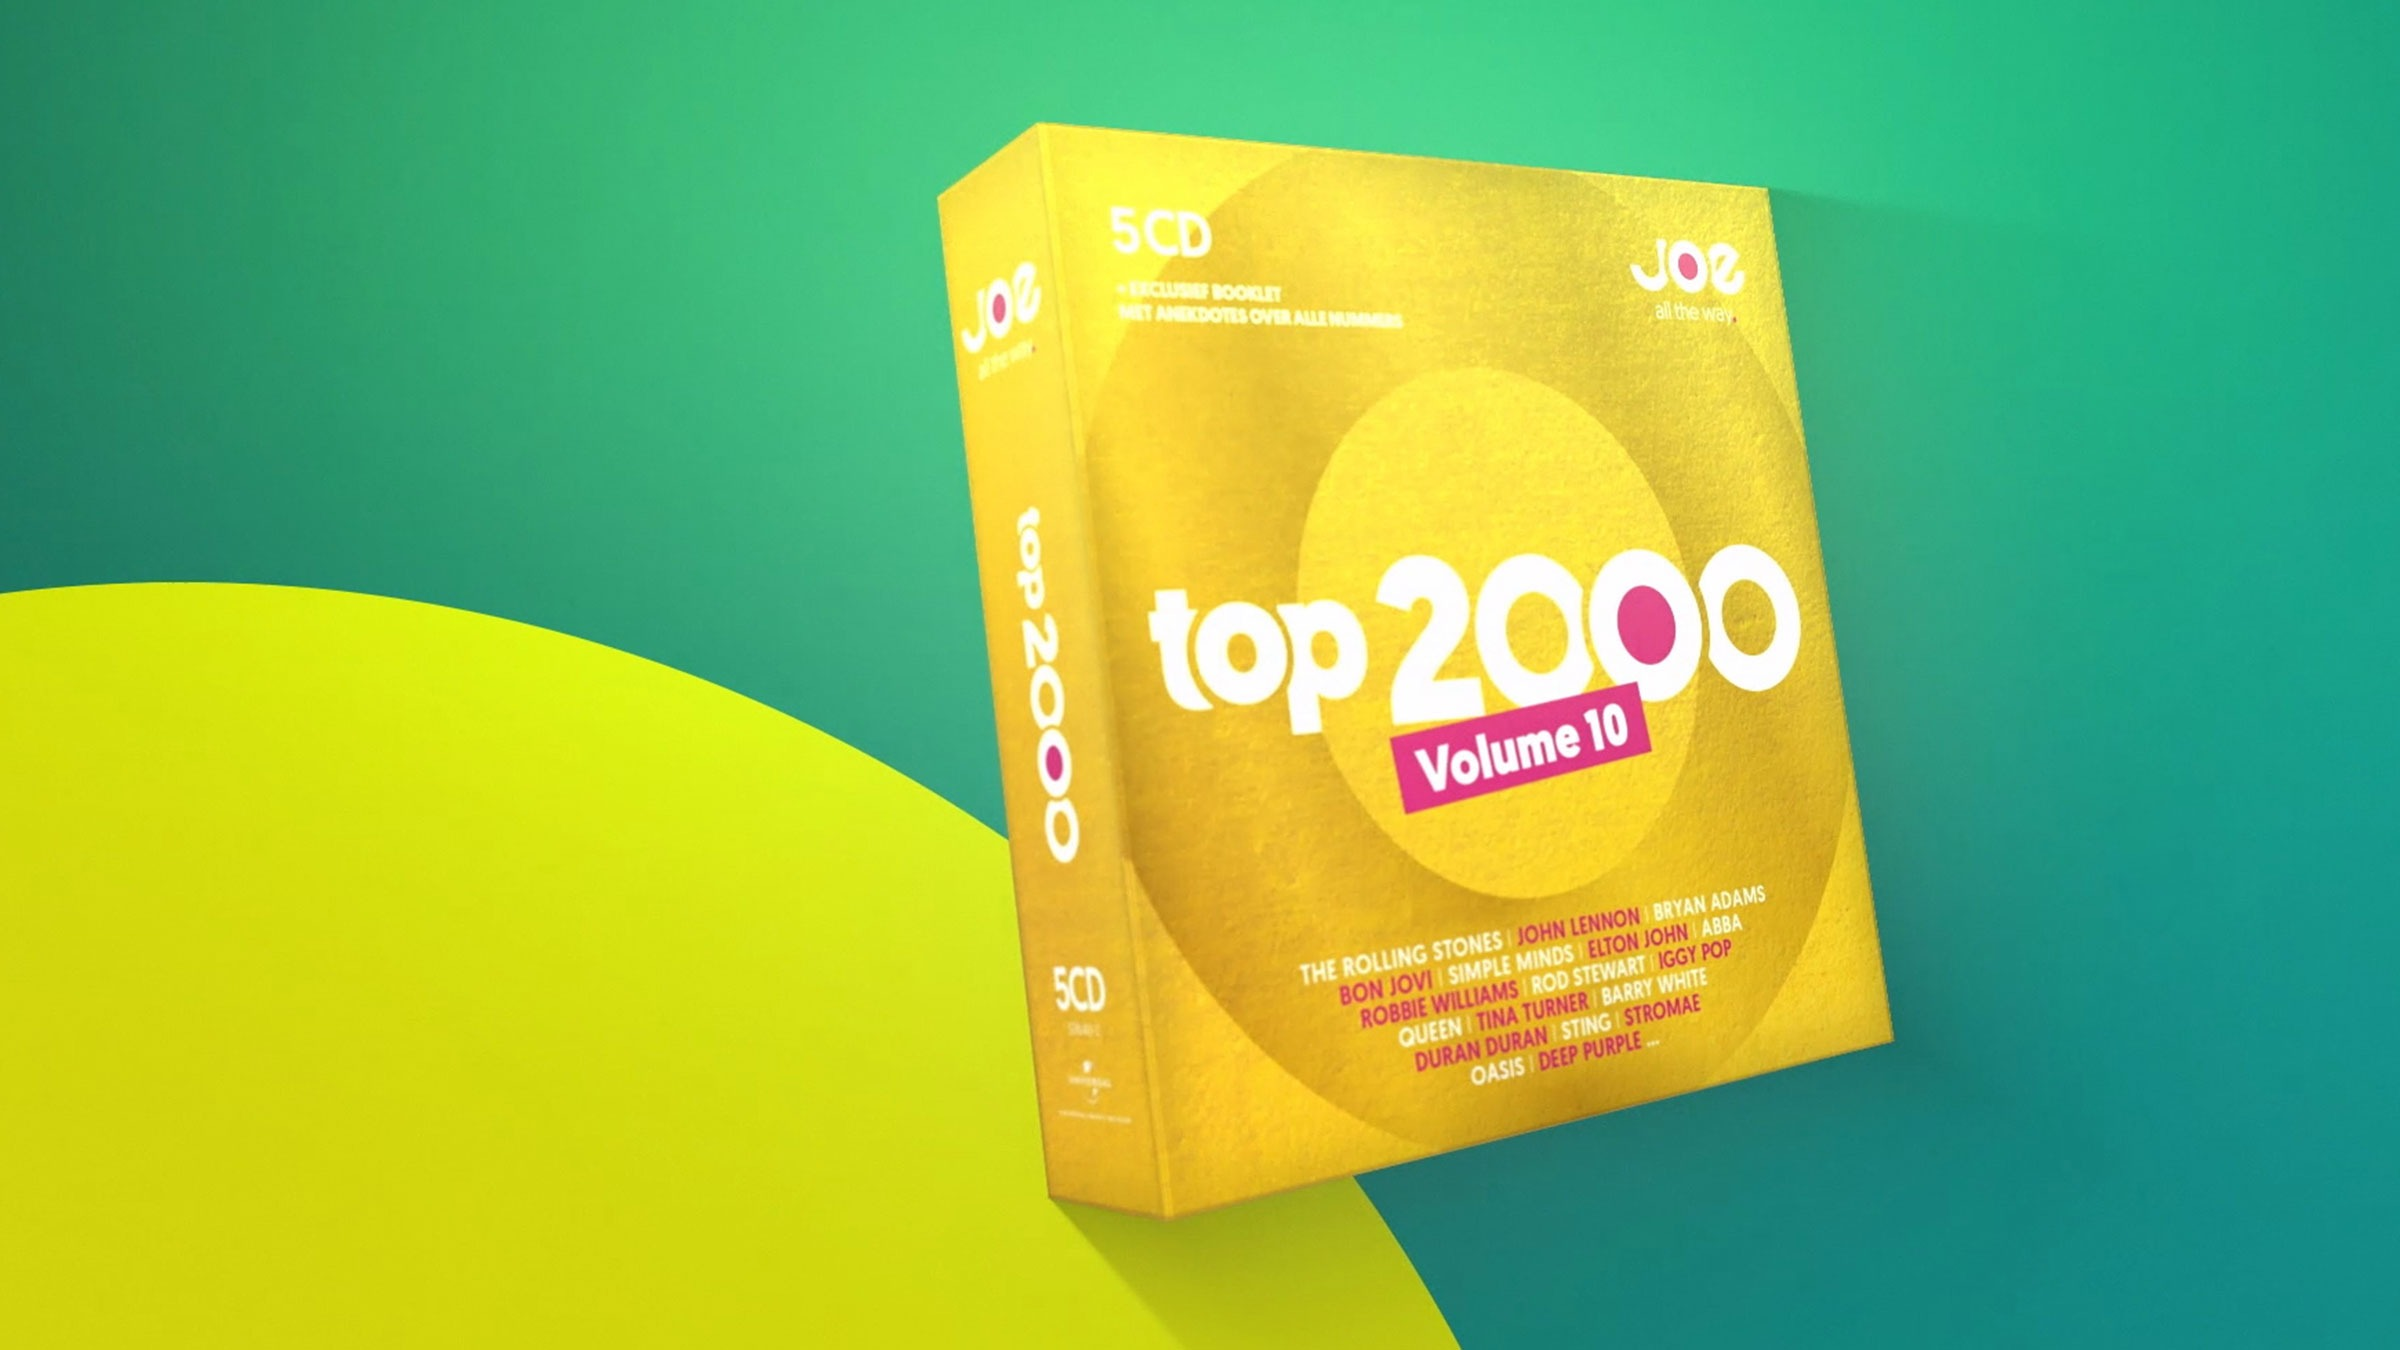 Top2000 cd header